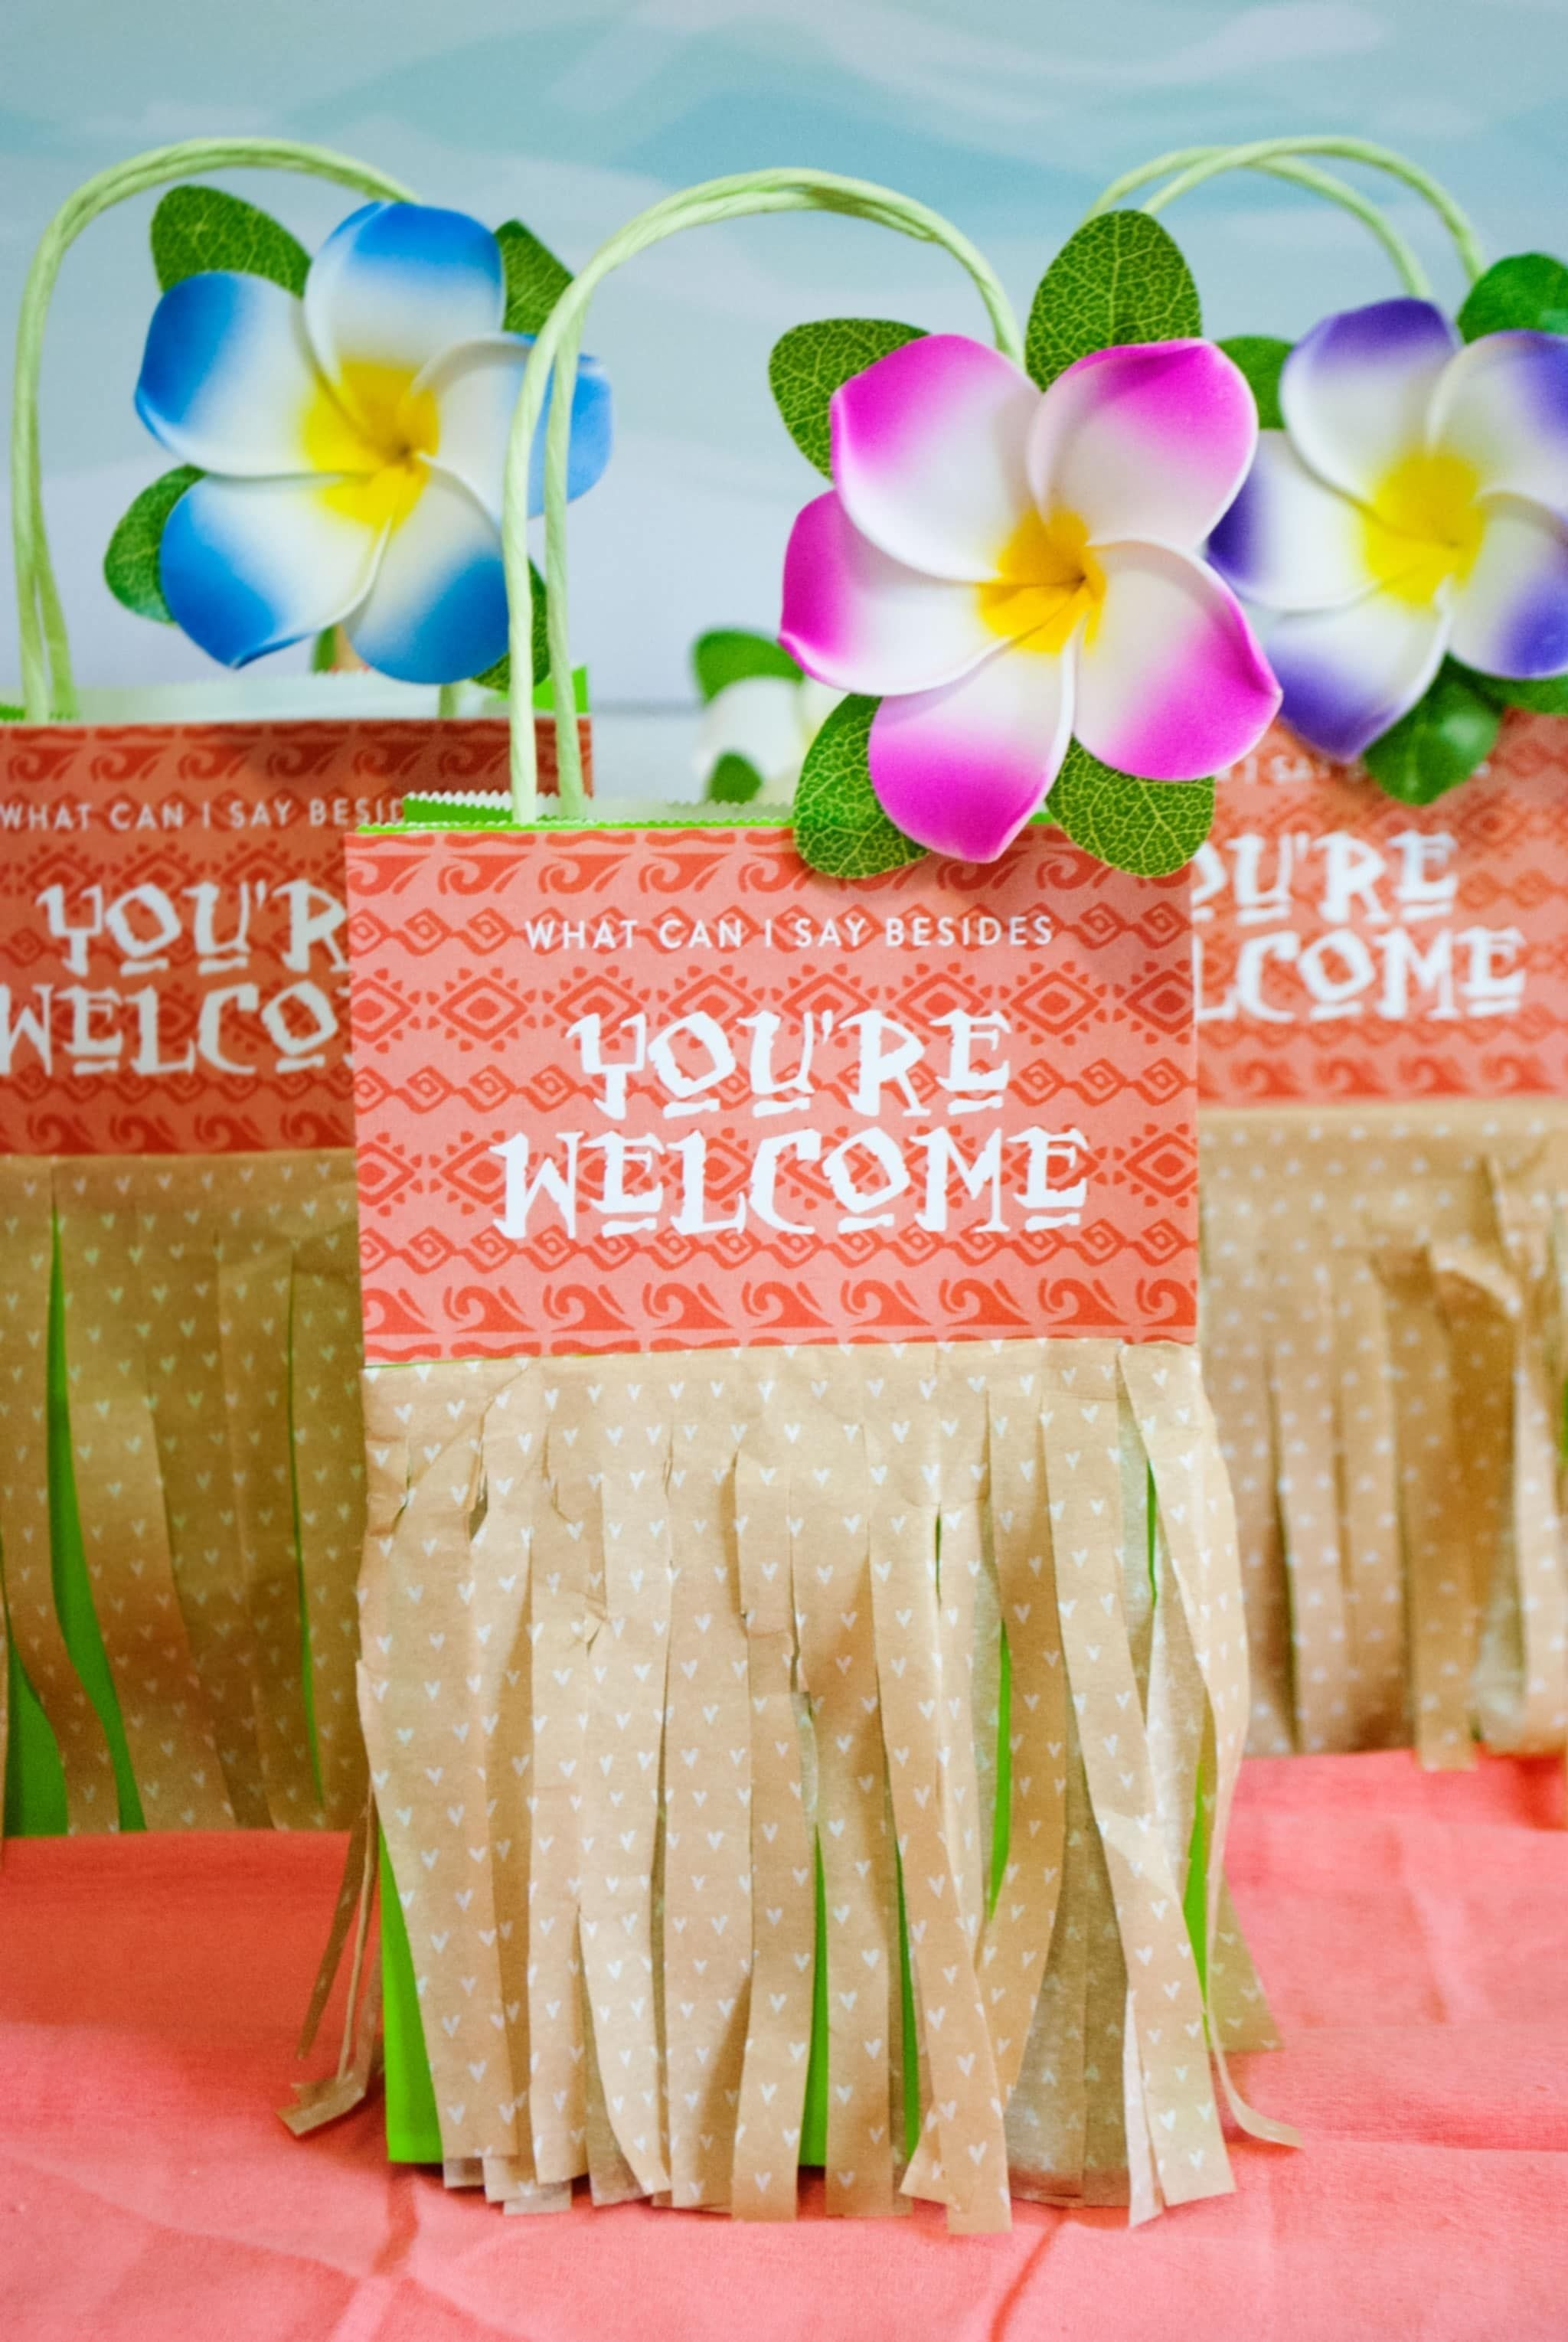 10 Unique Pool Party Gift Bag Ideas youre welcome in advance for these moana birthday party ideas